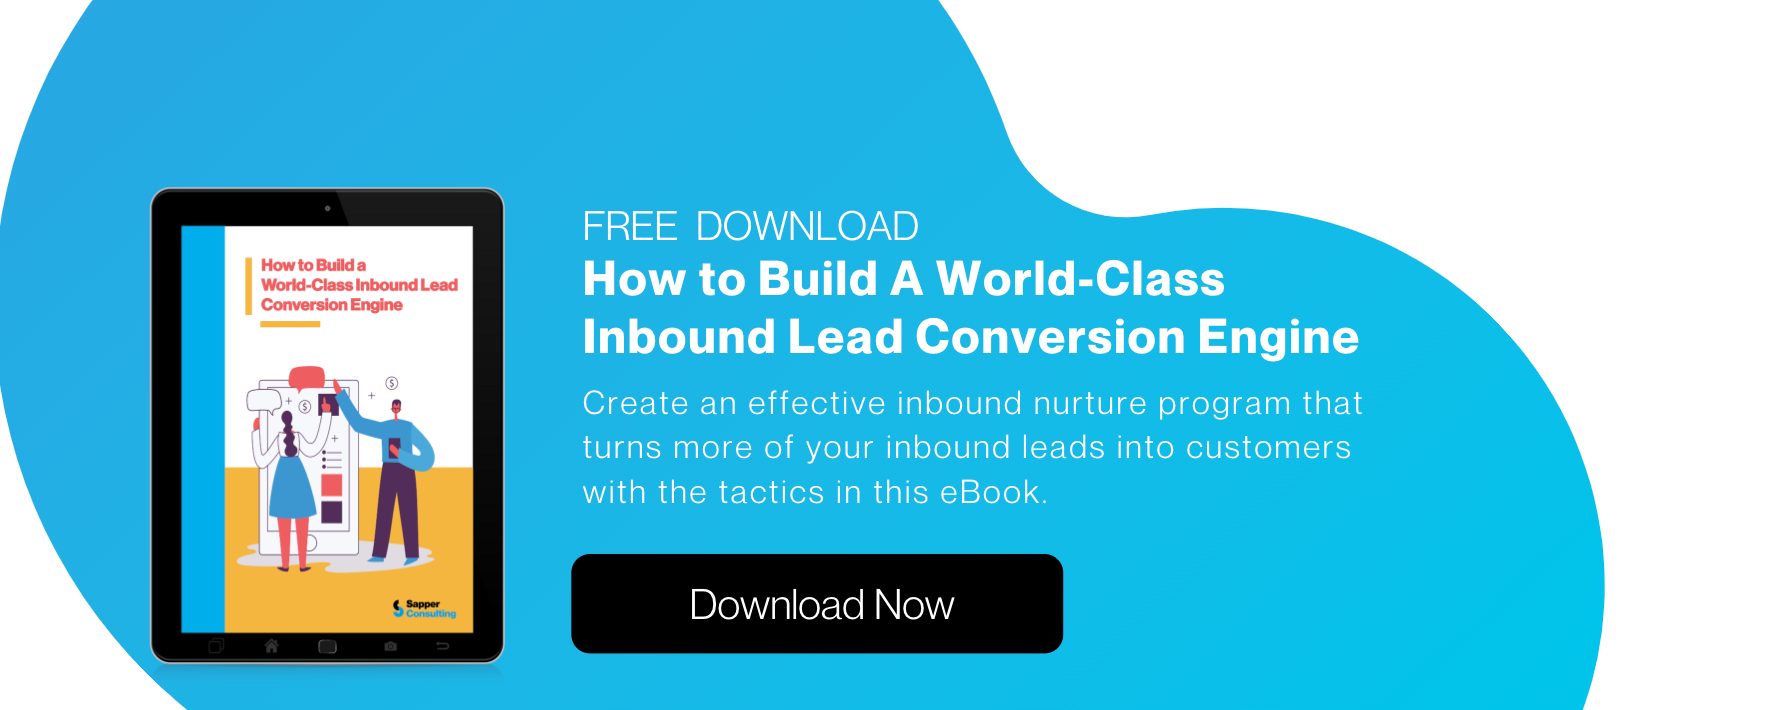 How to Create A World Class Conversion Engine